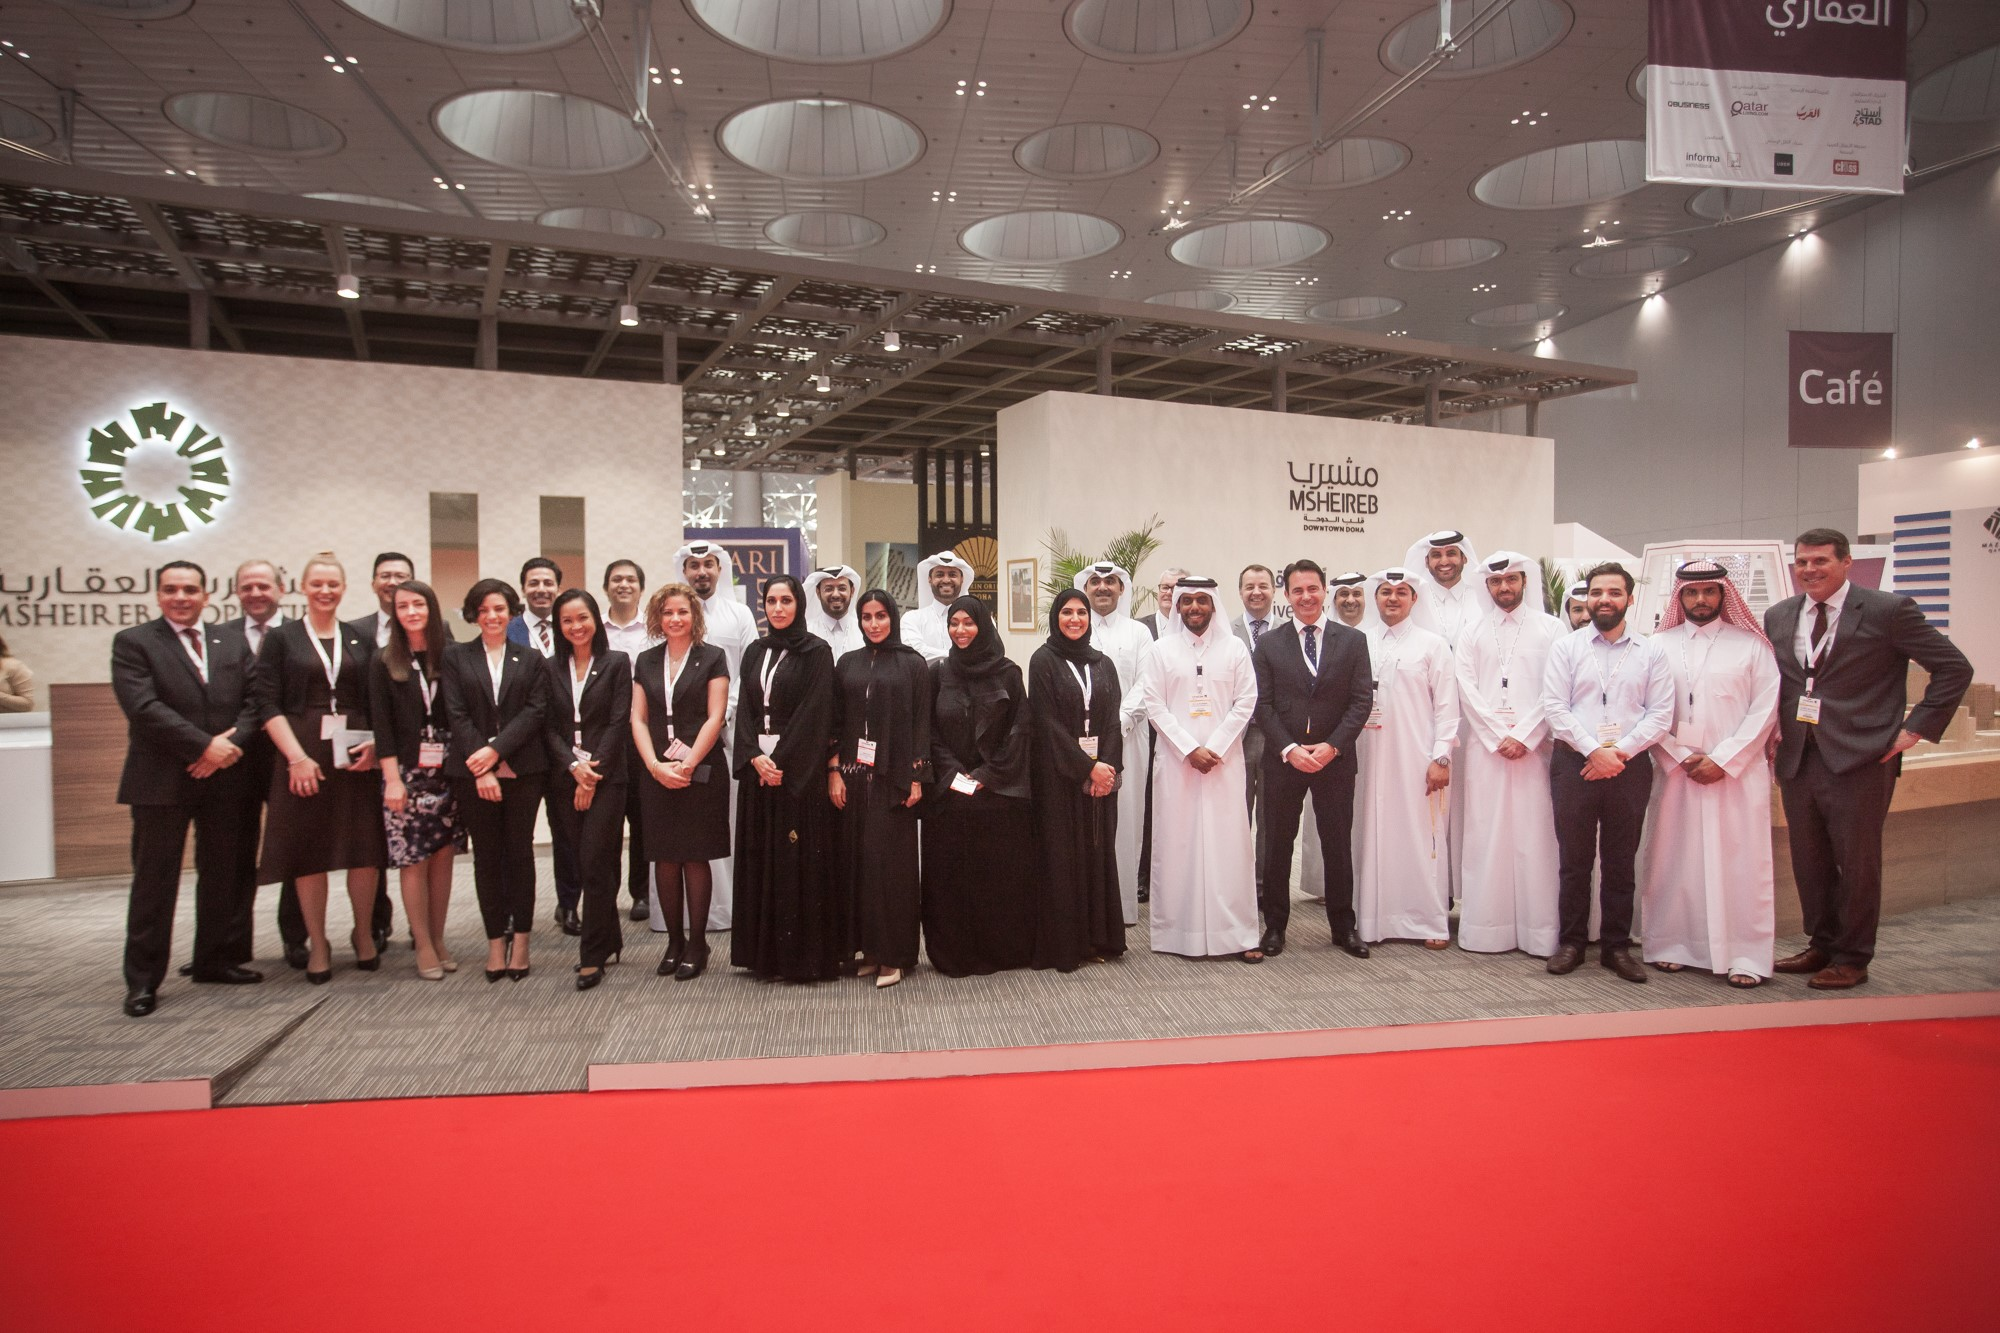 Activating Msheireb Downtown Doha's Leasing Opportunities, Msheireb Properties Opens its Pavilion at Cityscape Qatar